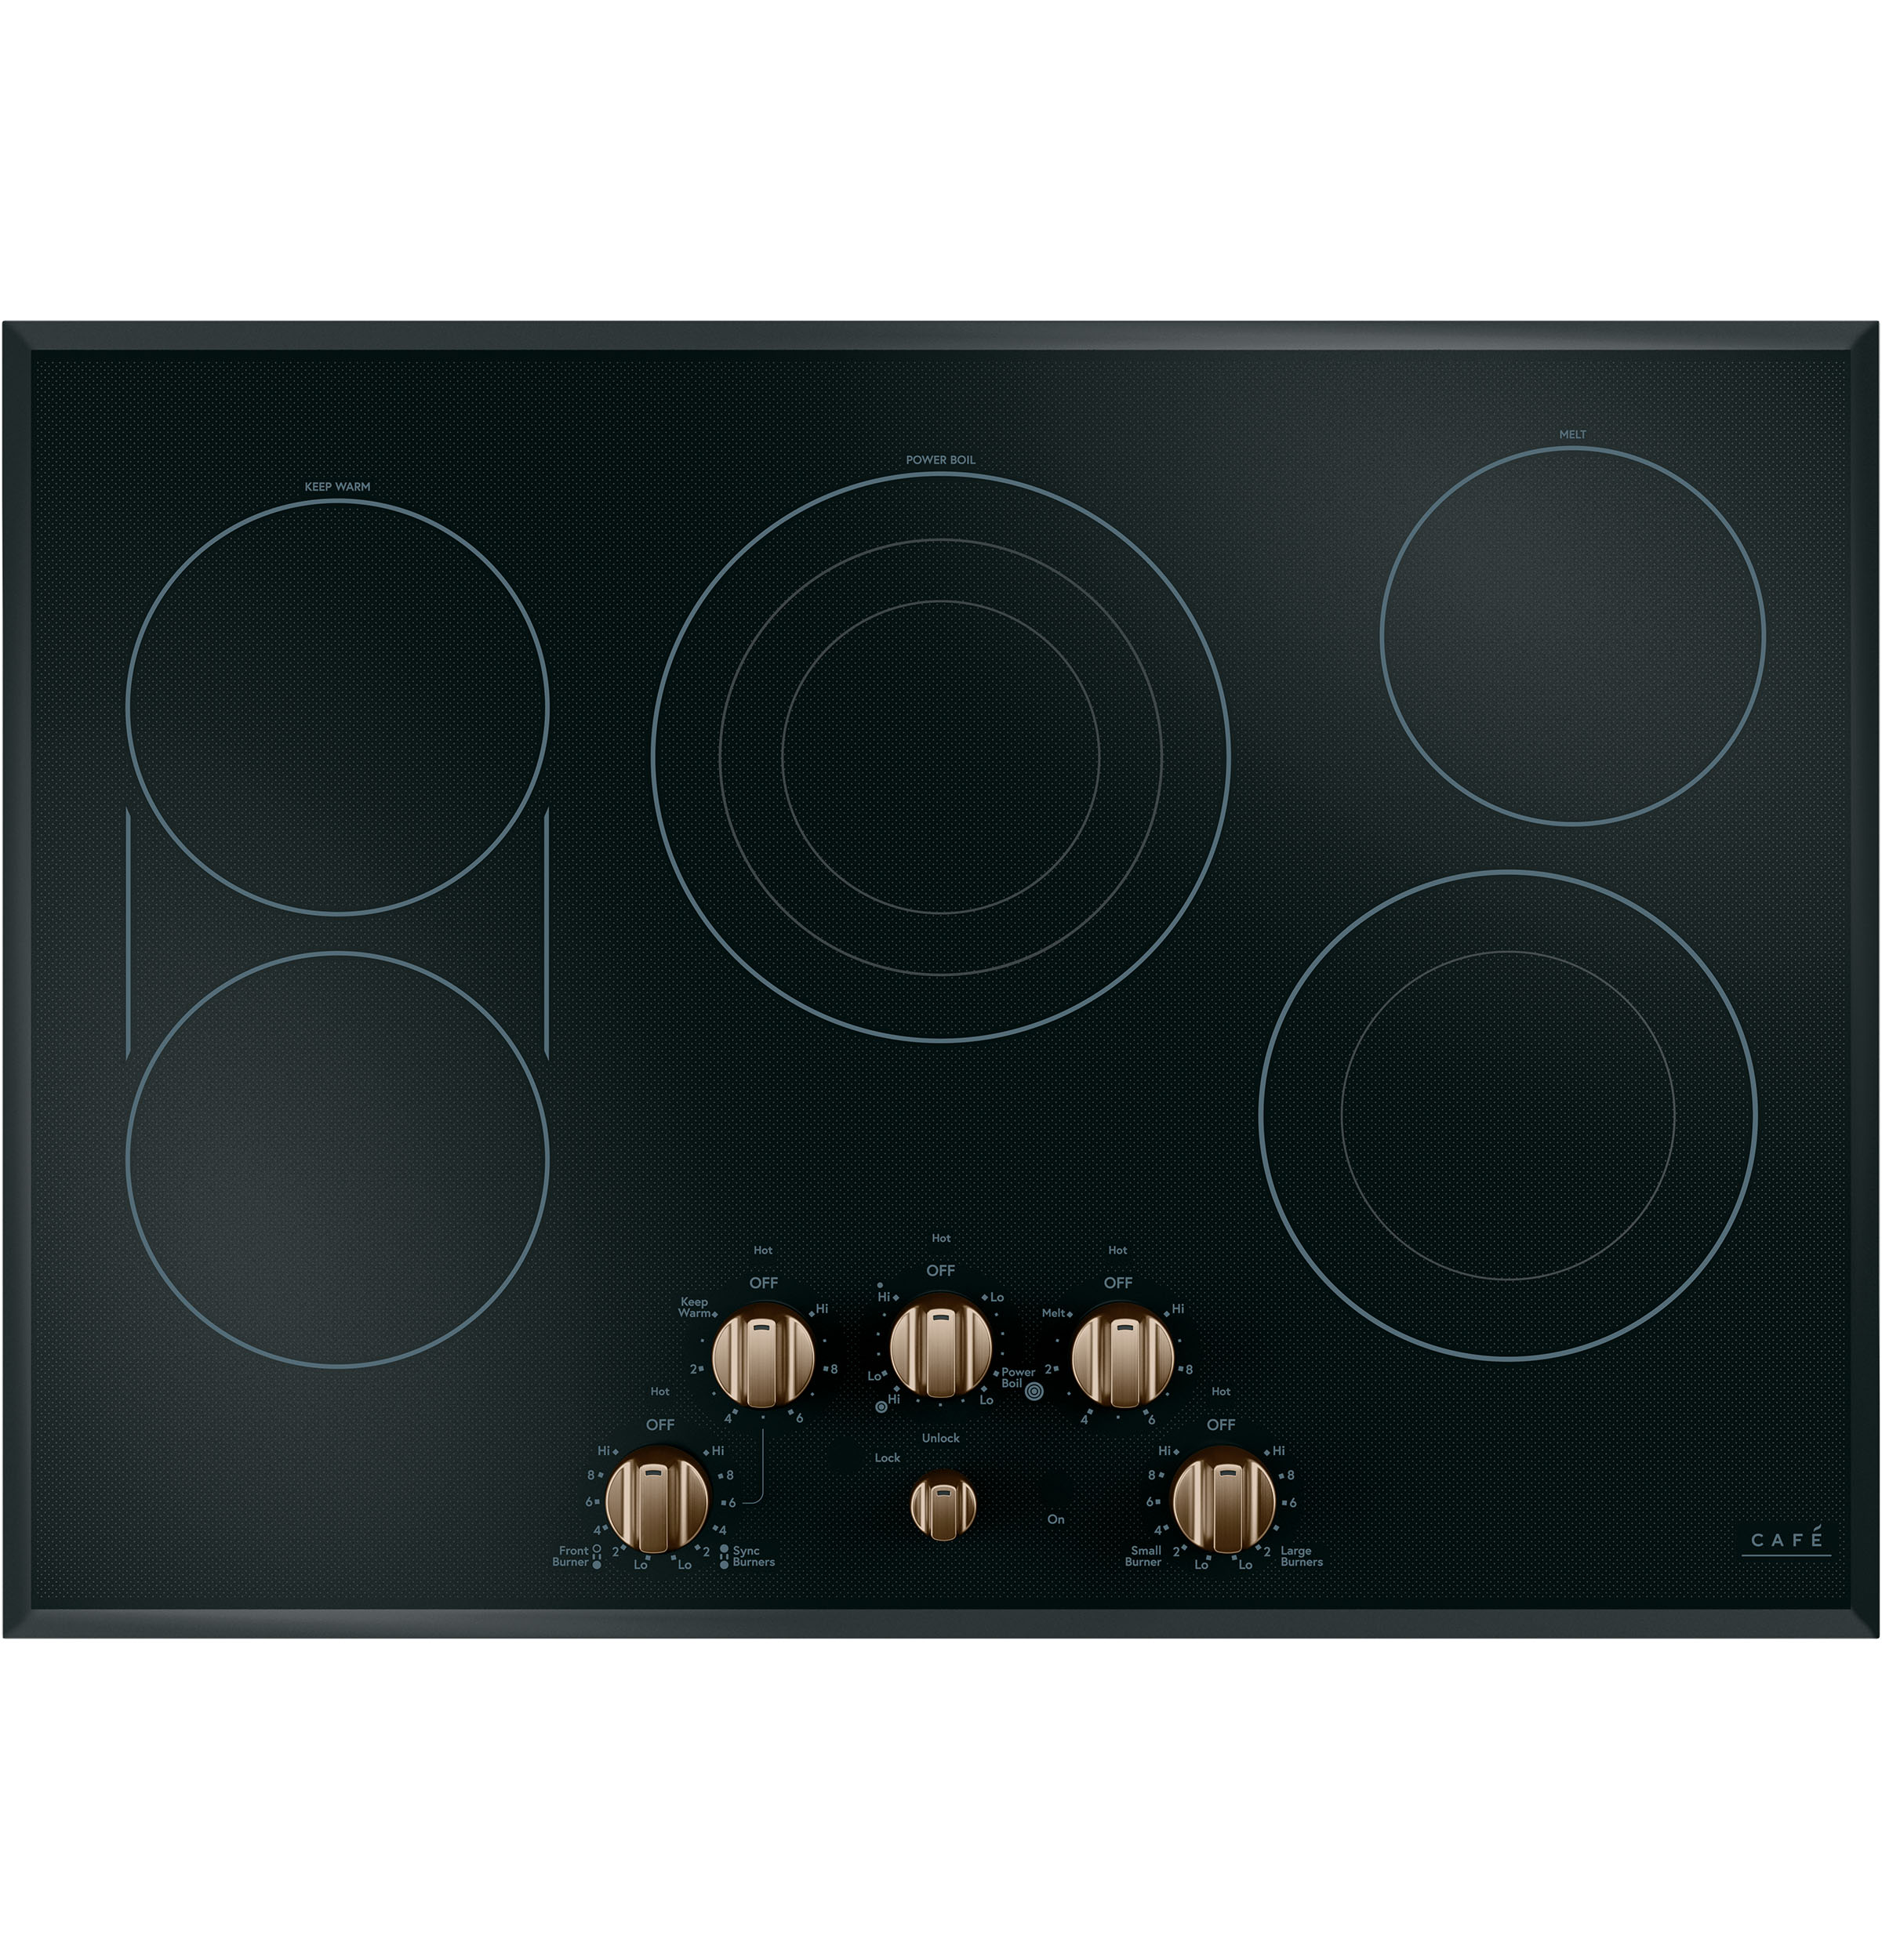 Cafe 5 Electric Cooktop Knobs - Brushed Bronze